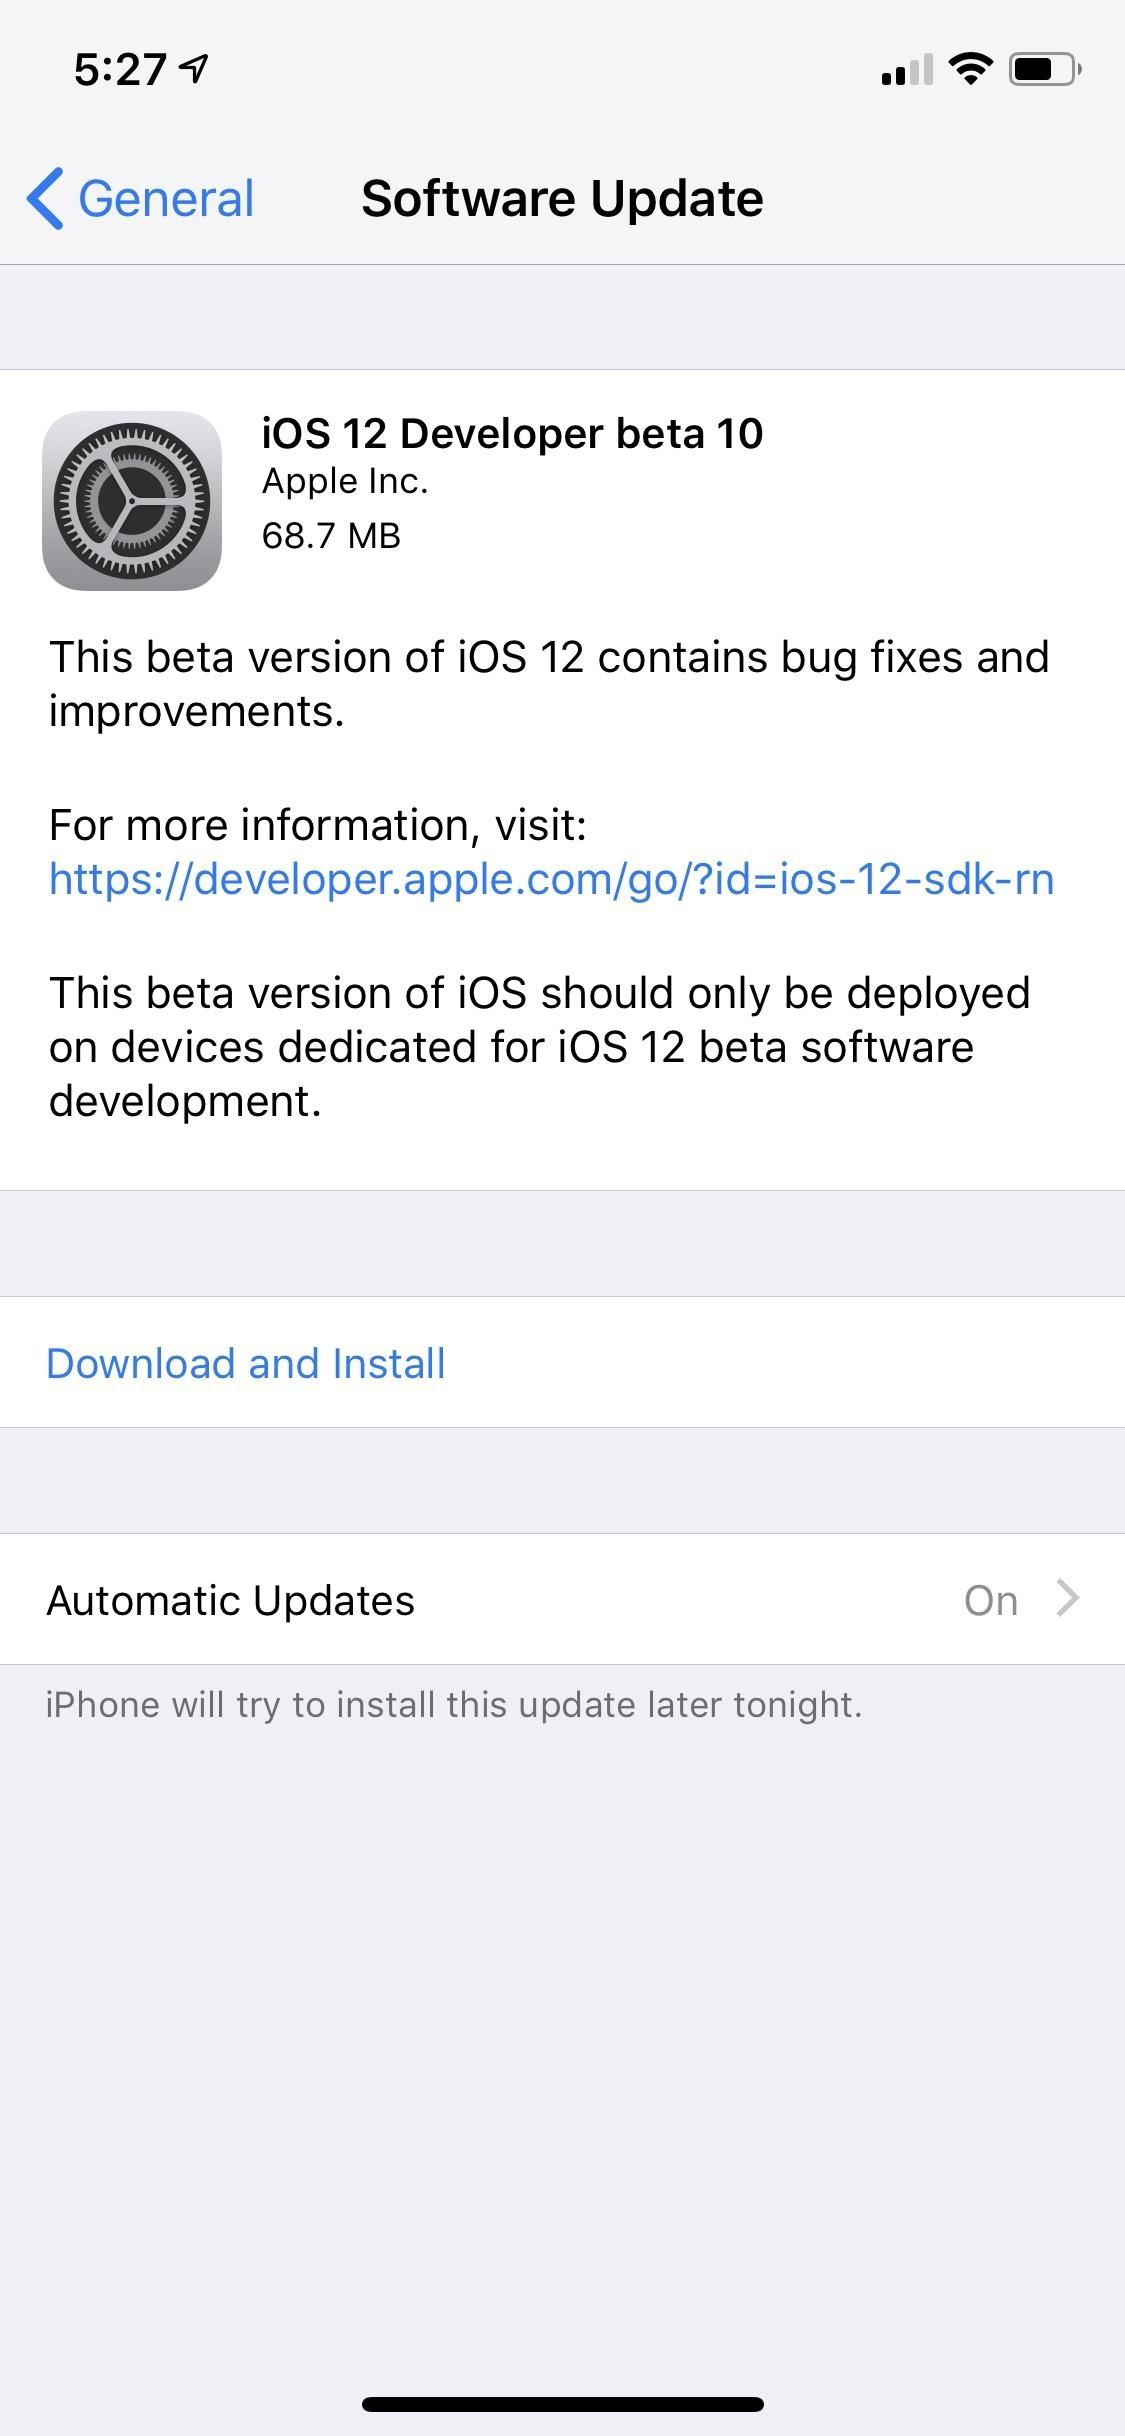 Apple Just Pushed Out iOS 12 Beta 10 for iPhone to Developers